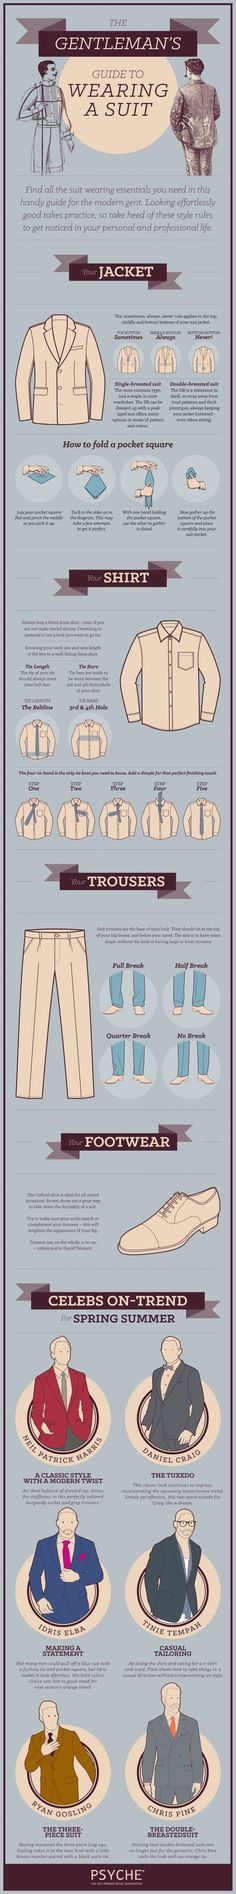 The Gentleman's Guide to Wearing a Suit [infographic]